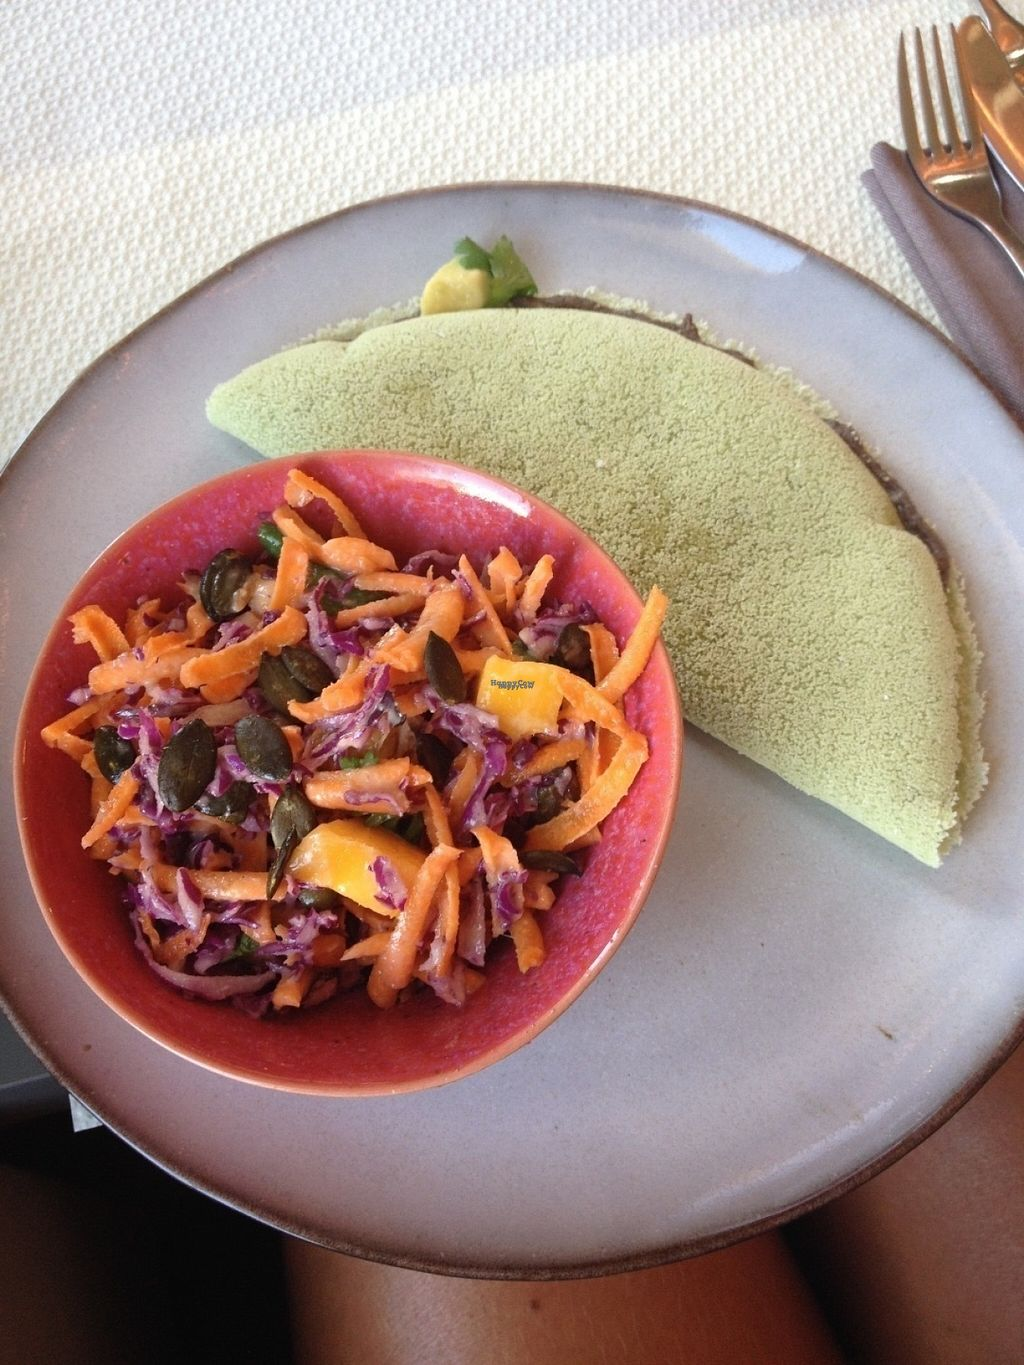 "Photo of Wild Girls Deli  by <a href=""/members/profile/SophieSerex"">SophieSerex</a> <br/>Tapioca crepe with black bean houmous, avocado, corn and tomatoes and a salad with red cabbage, grated carrots, mango and pumpkin seeds.  <br/> August 15, 2016  - <a href='/contact/abuse/image/76628/169093'>Report</a>"